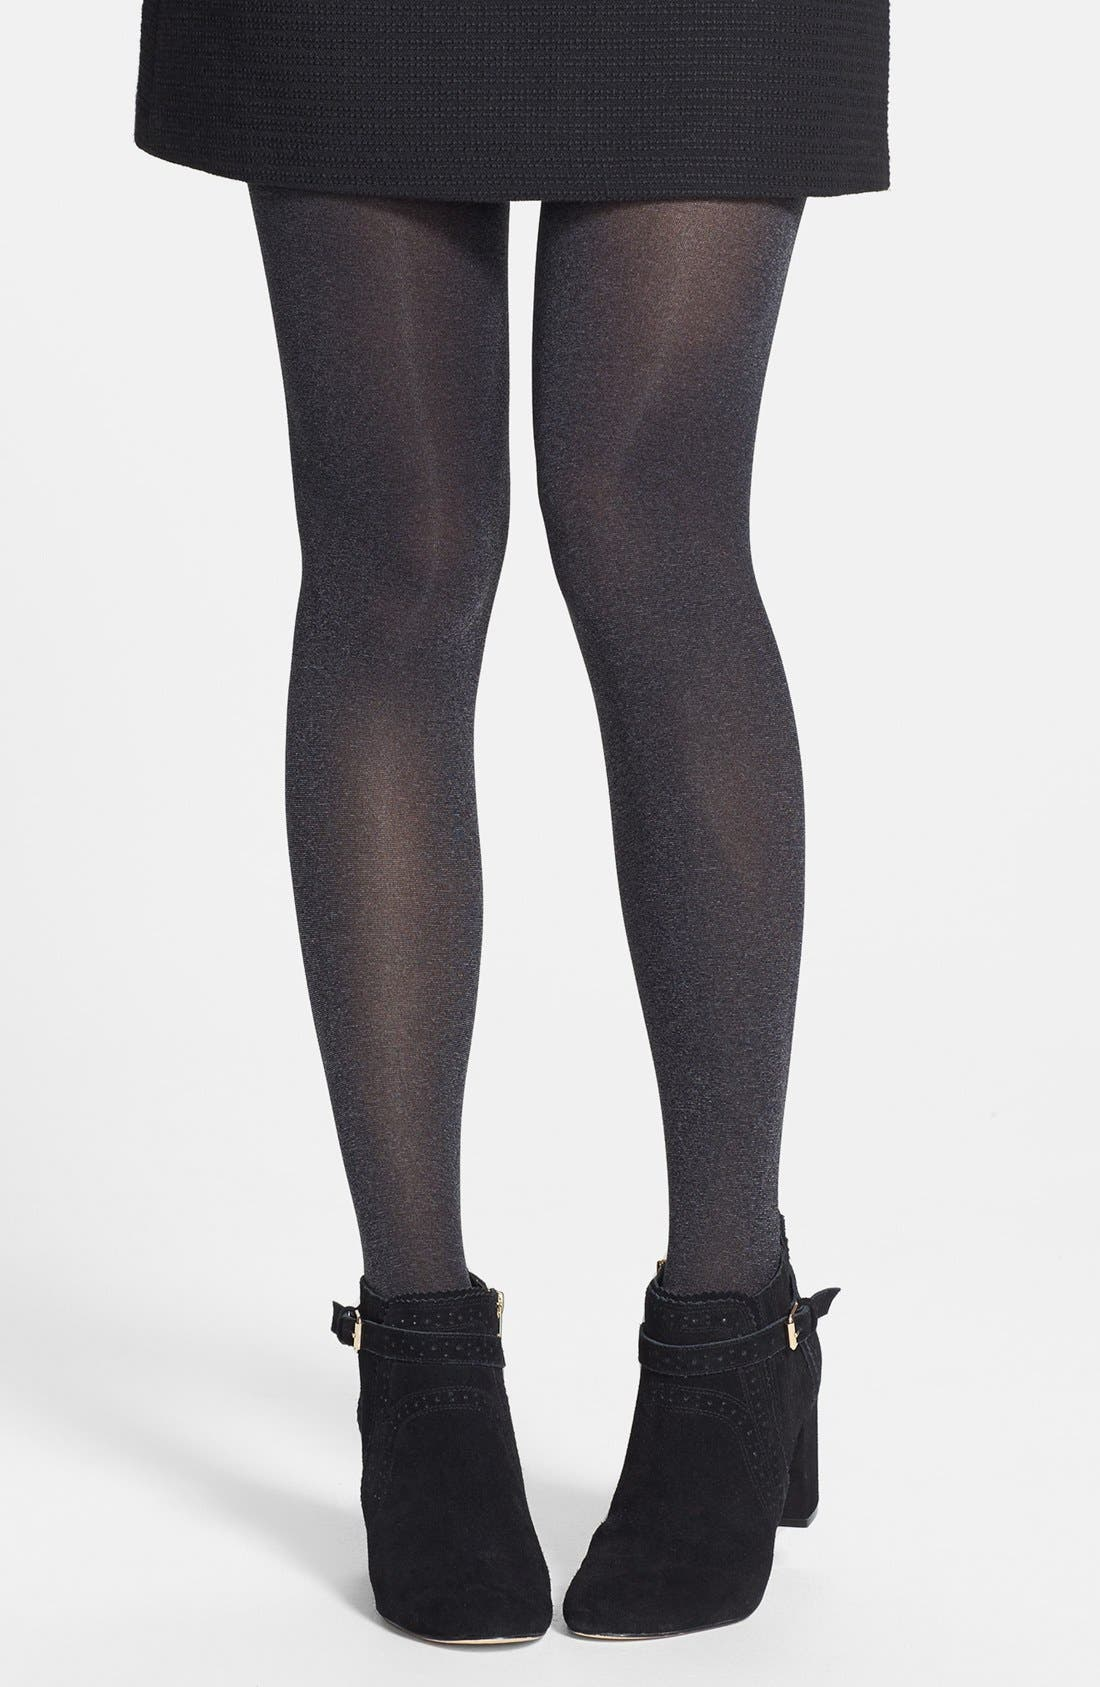 Heathered Opaque Tights,                             Main thumbnail 1, color,                             001